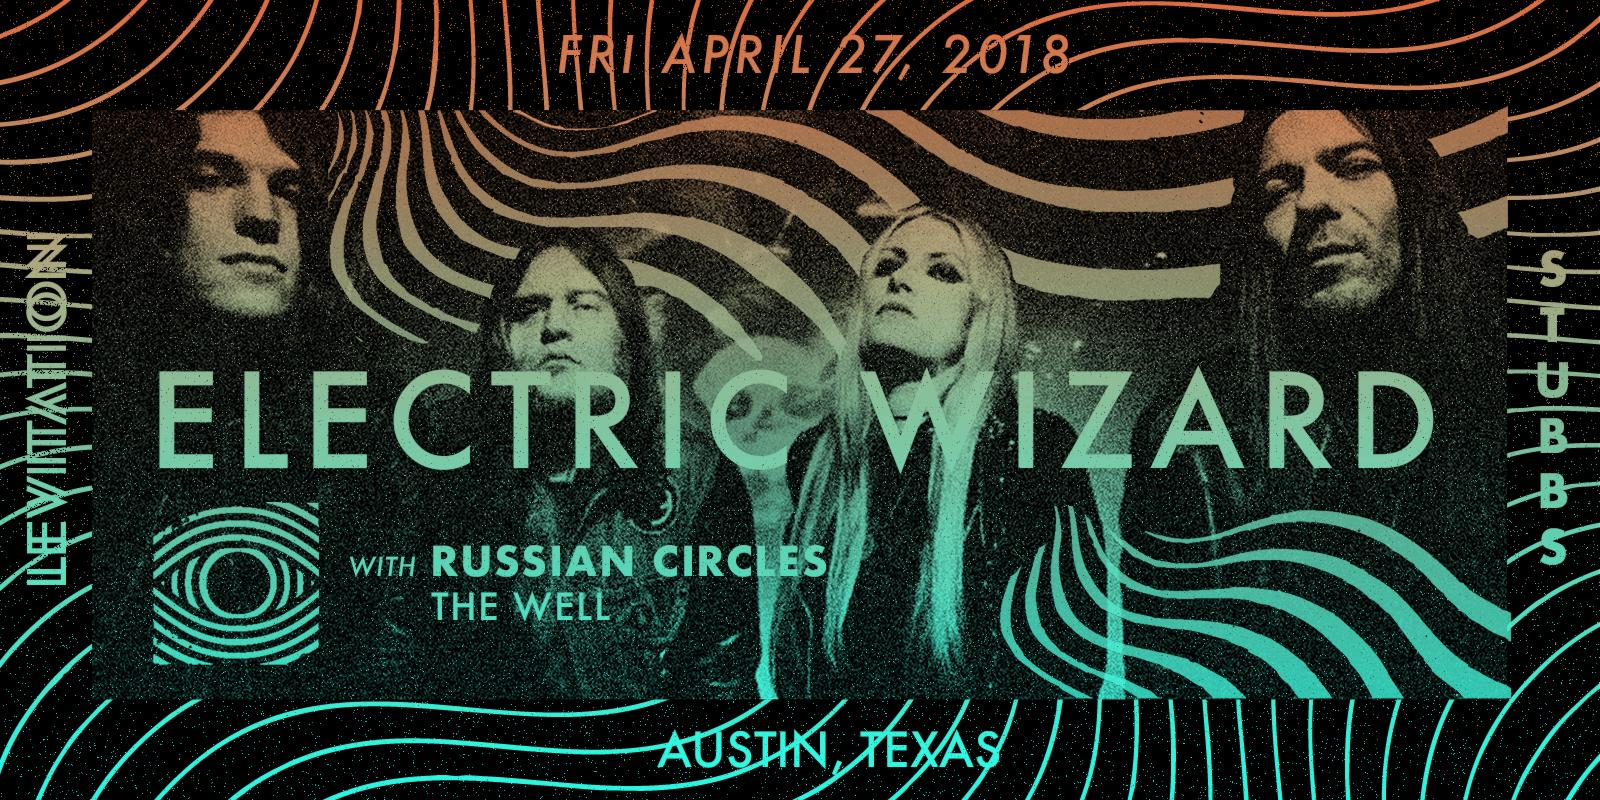 Electric Wizard, Russian Circles, The Well